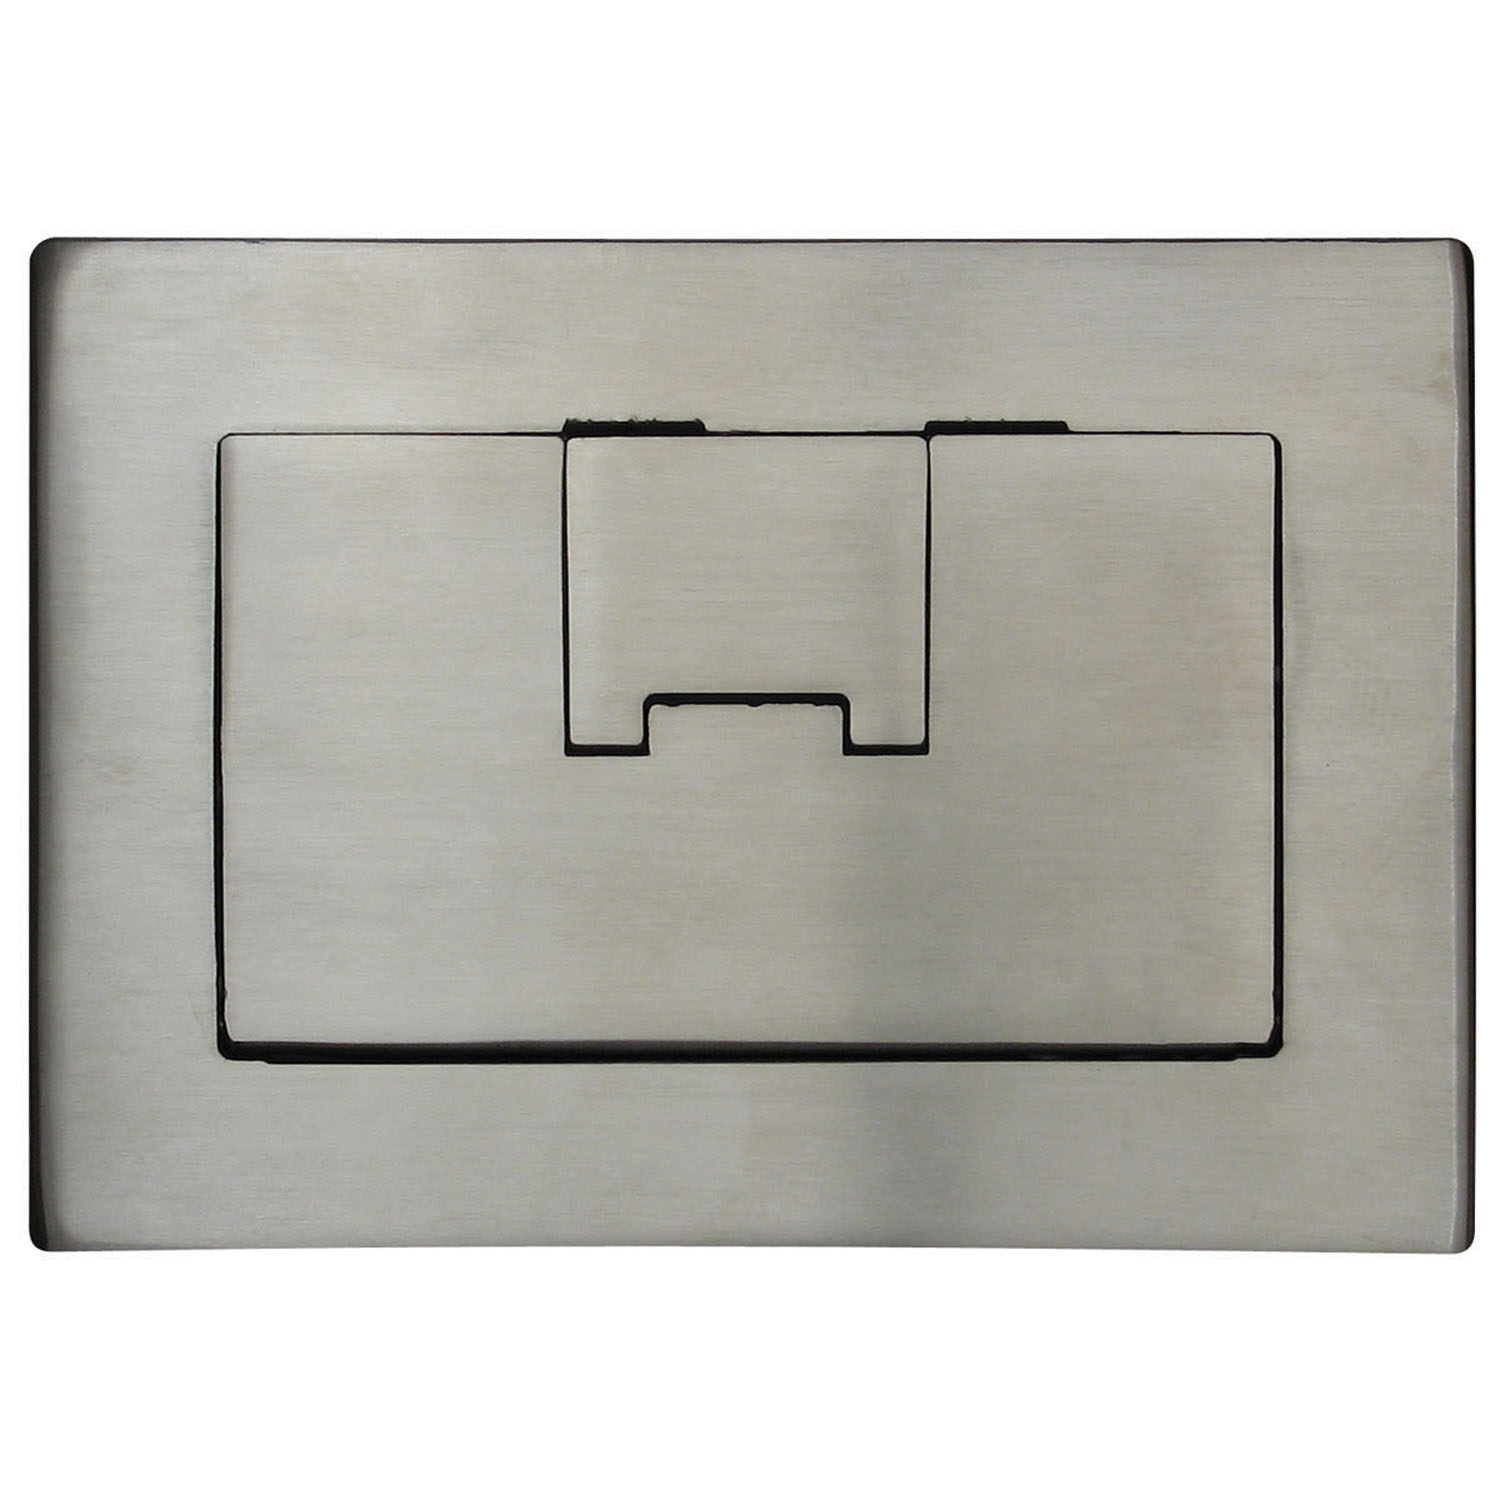 Carlon,E9761SS,COVER ASSY. SINGLE, STAINLESS STEEL